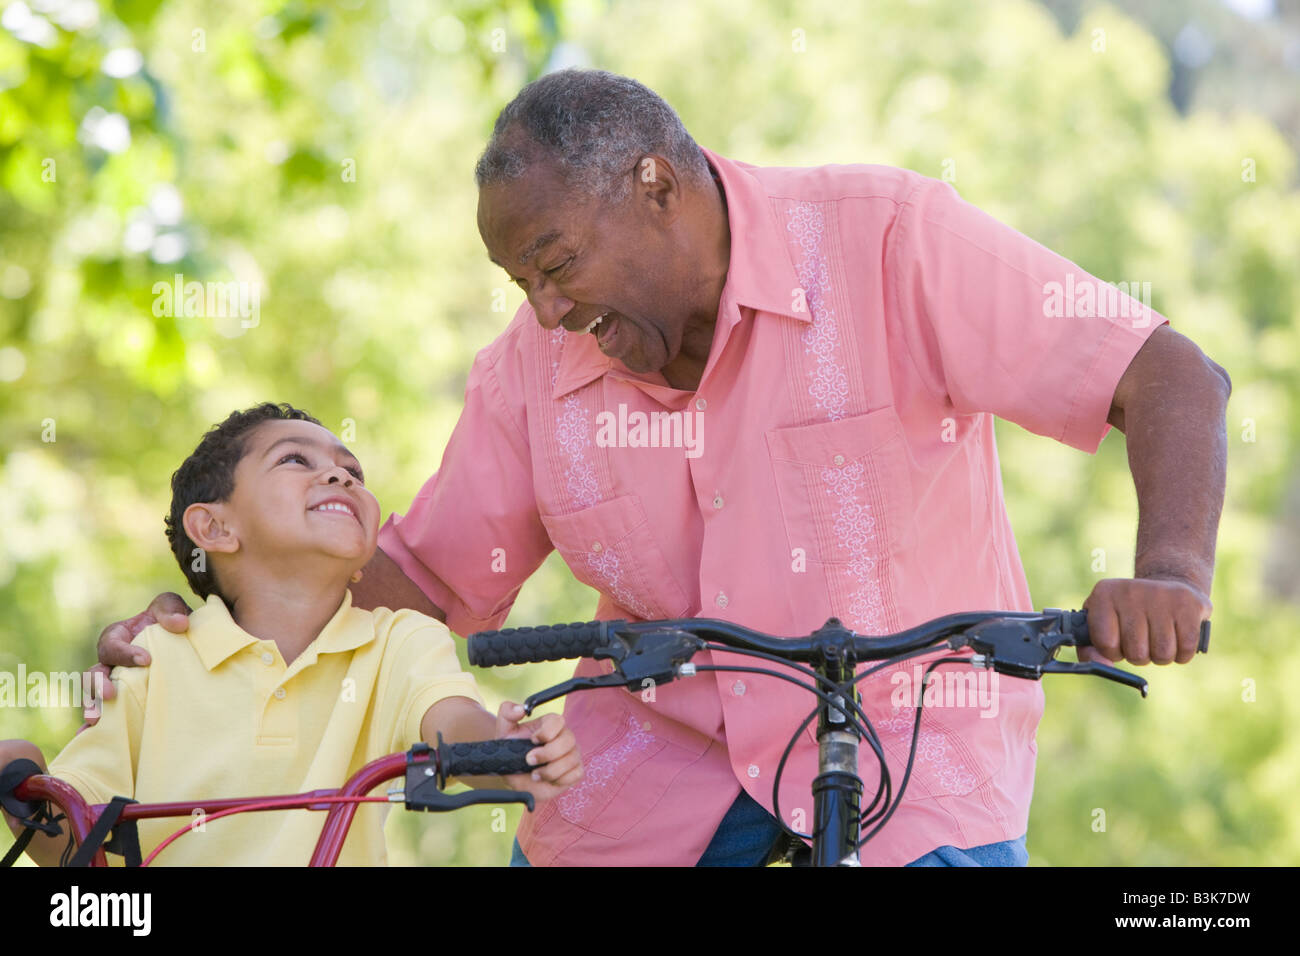 Grandfather and grandson on bikes outdoors smiling - Stock Image